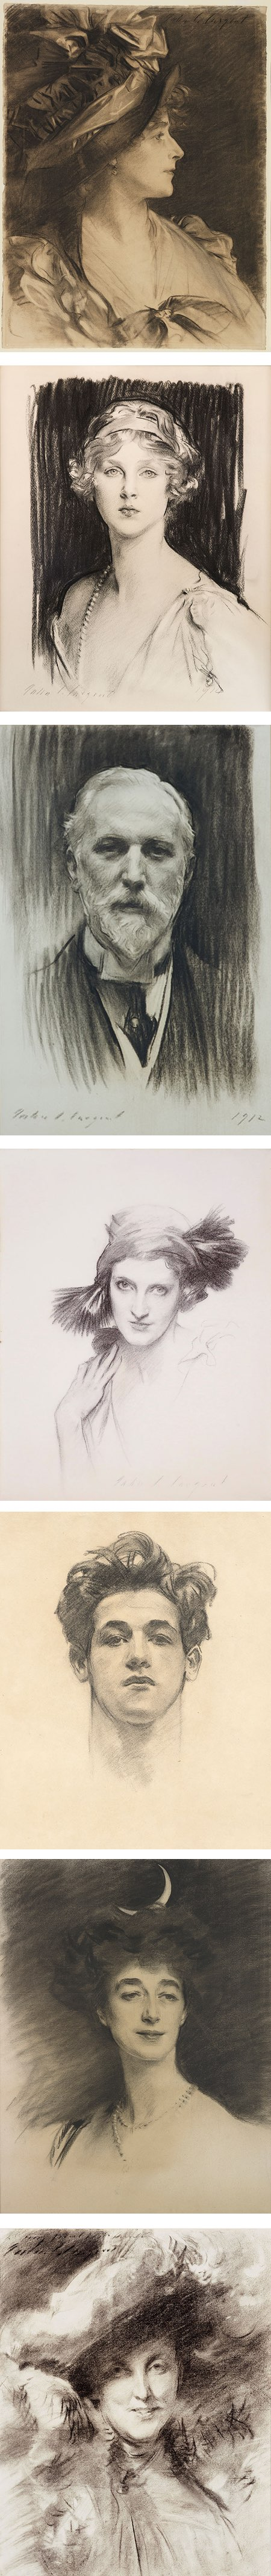 John Singer Sargent charcoal portrait drawings